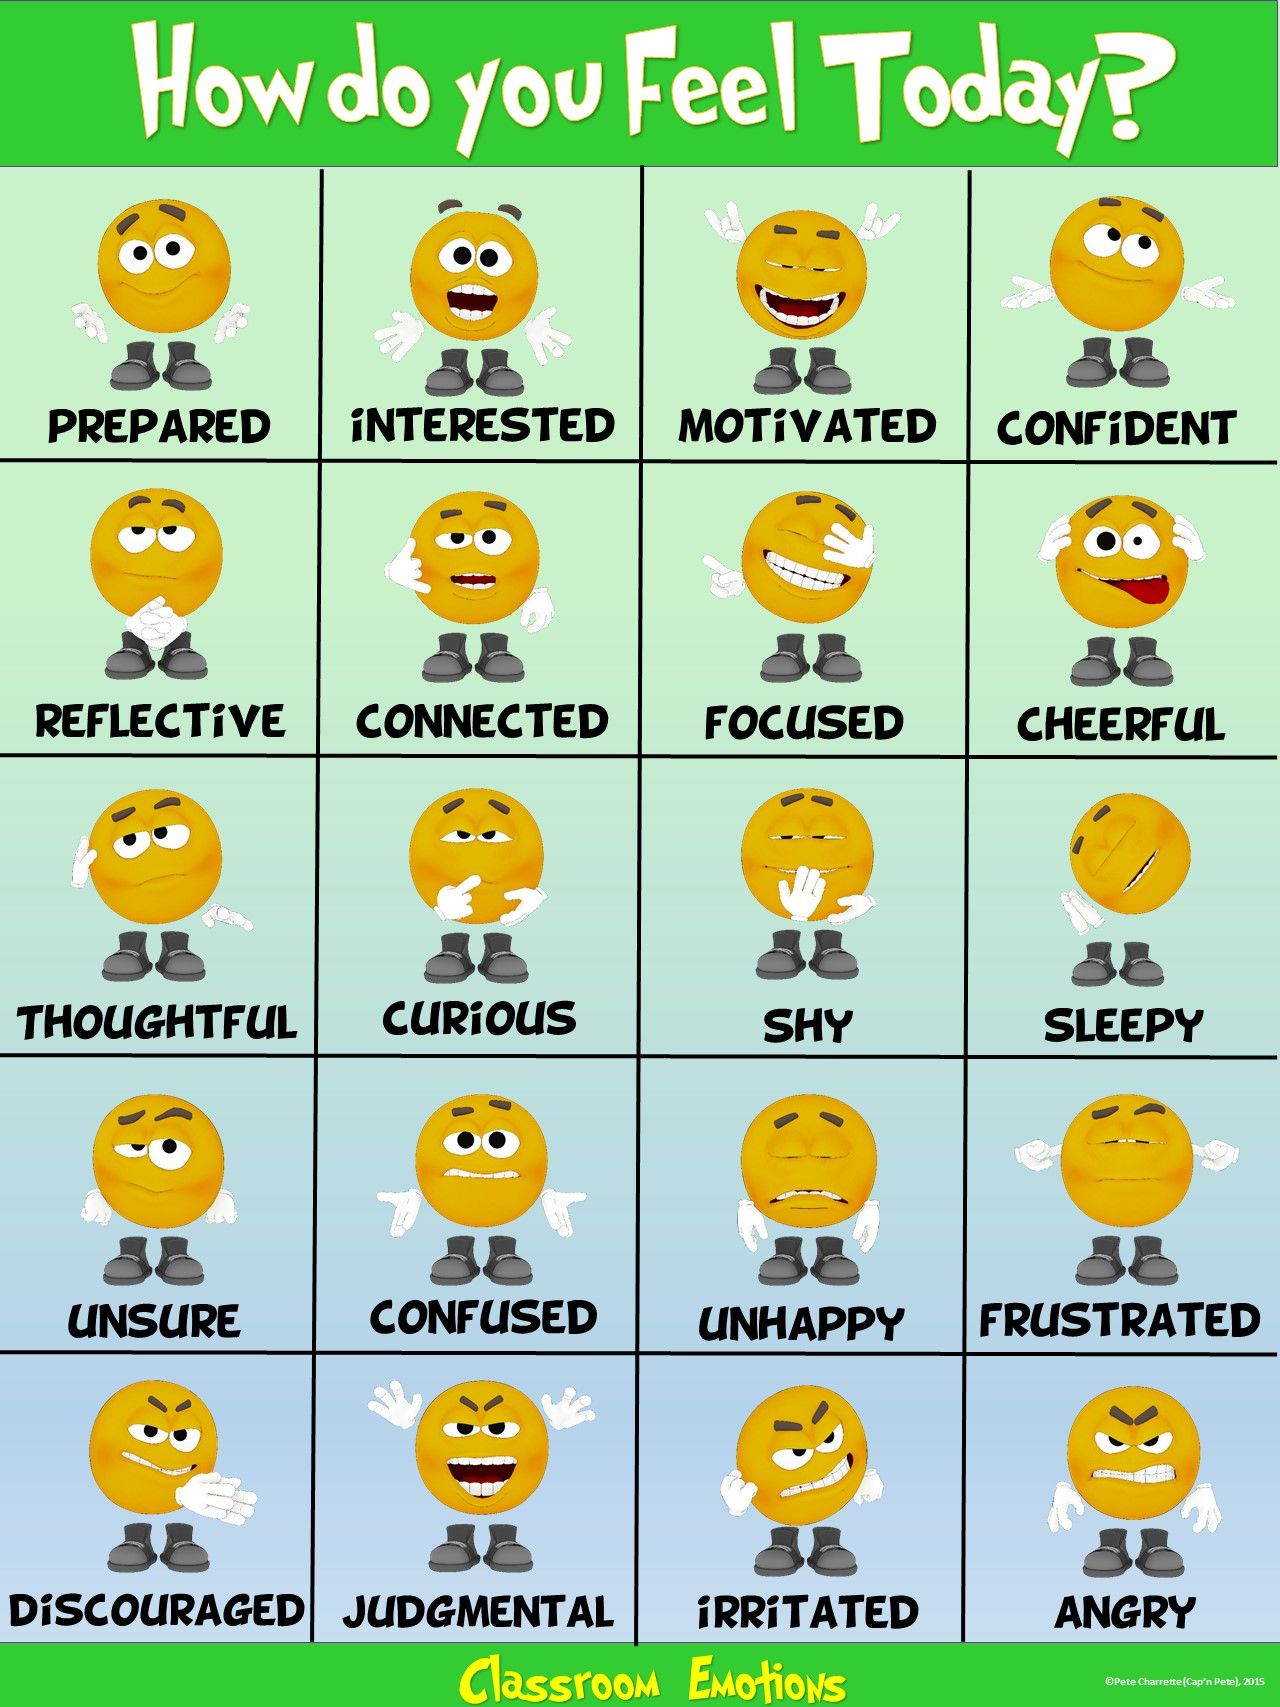 Classroom Fun Poster How Are You Feeling Today Classroom Emotions